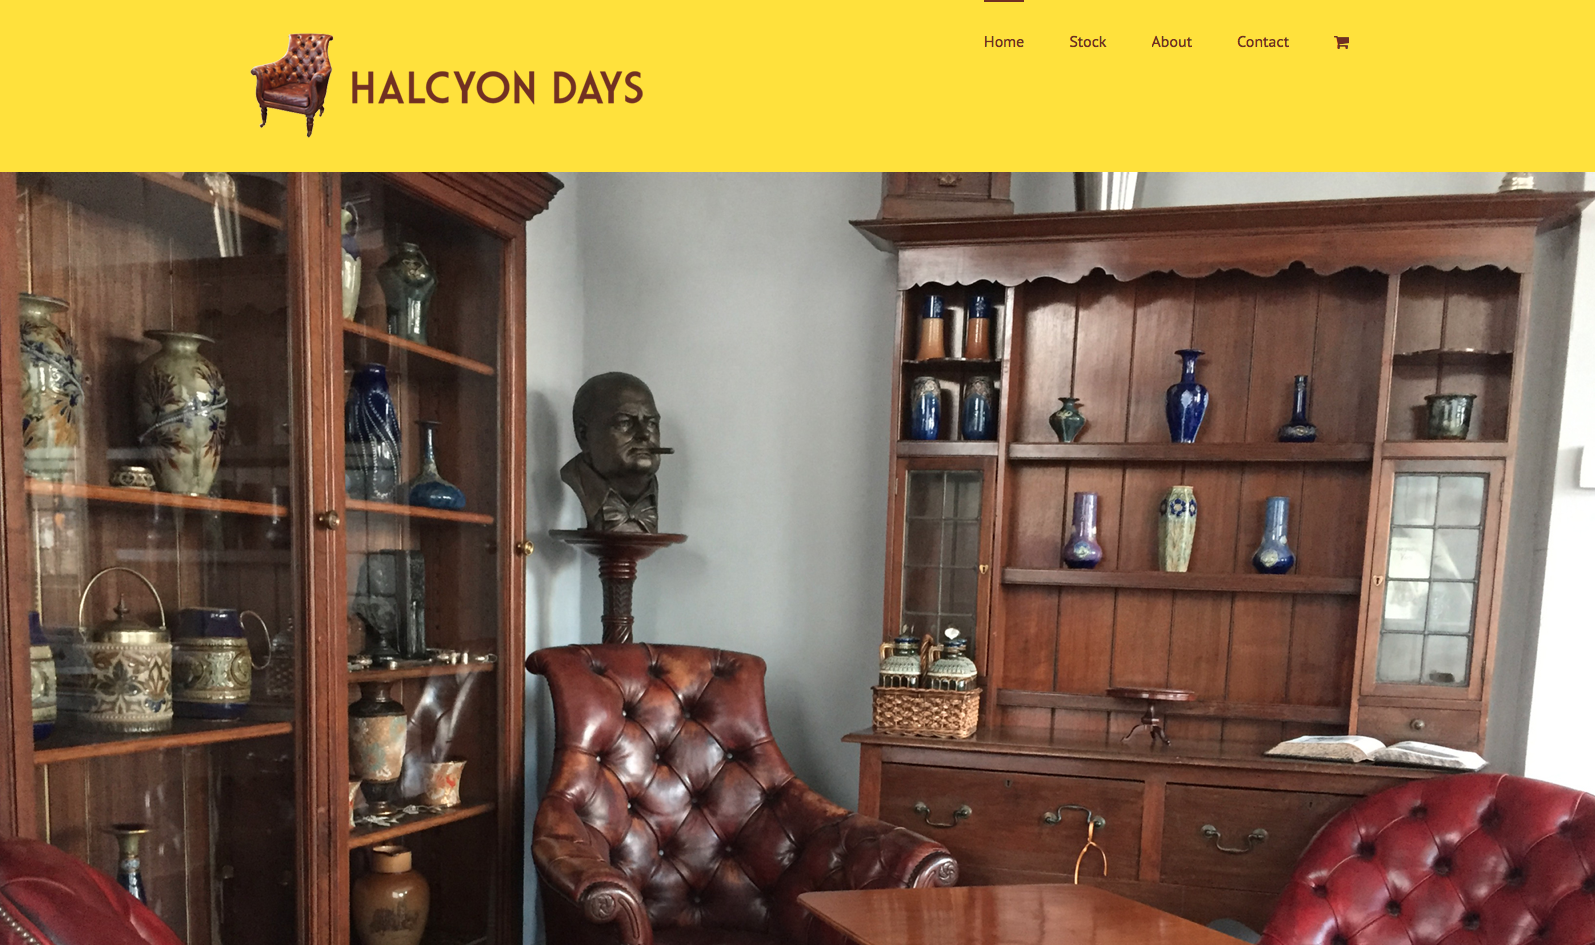 Home page from Halcyon days website design